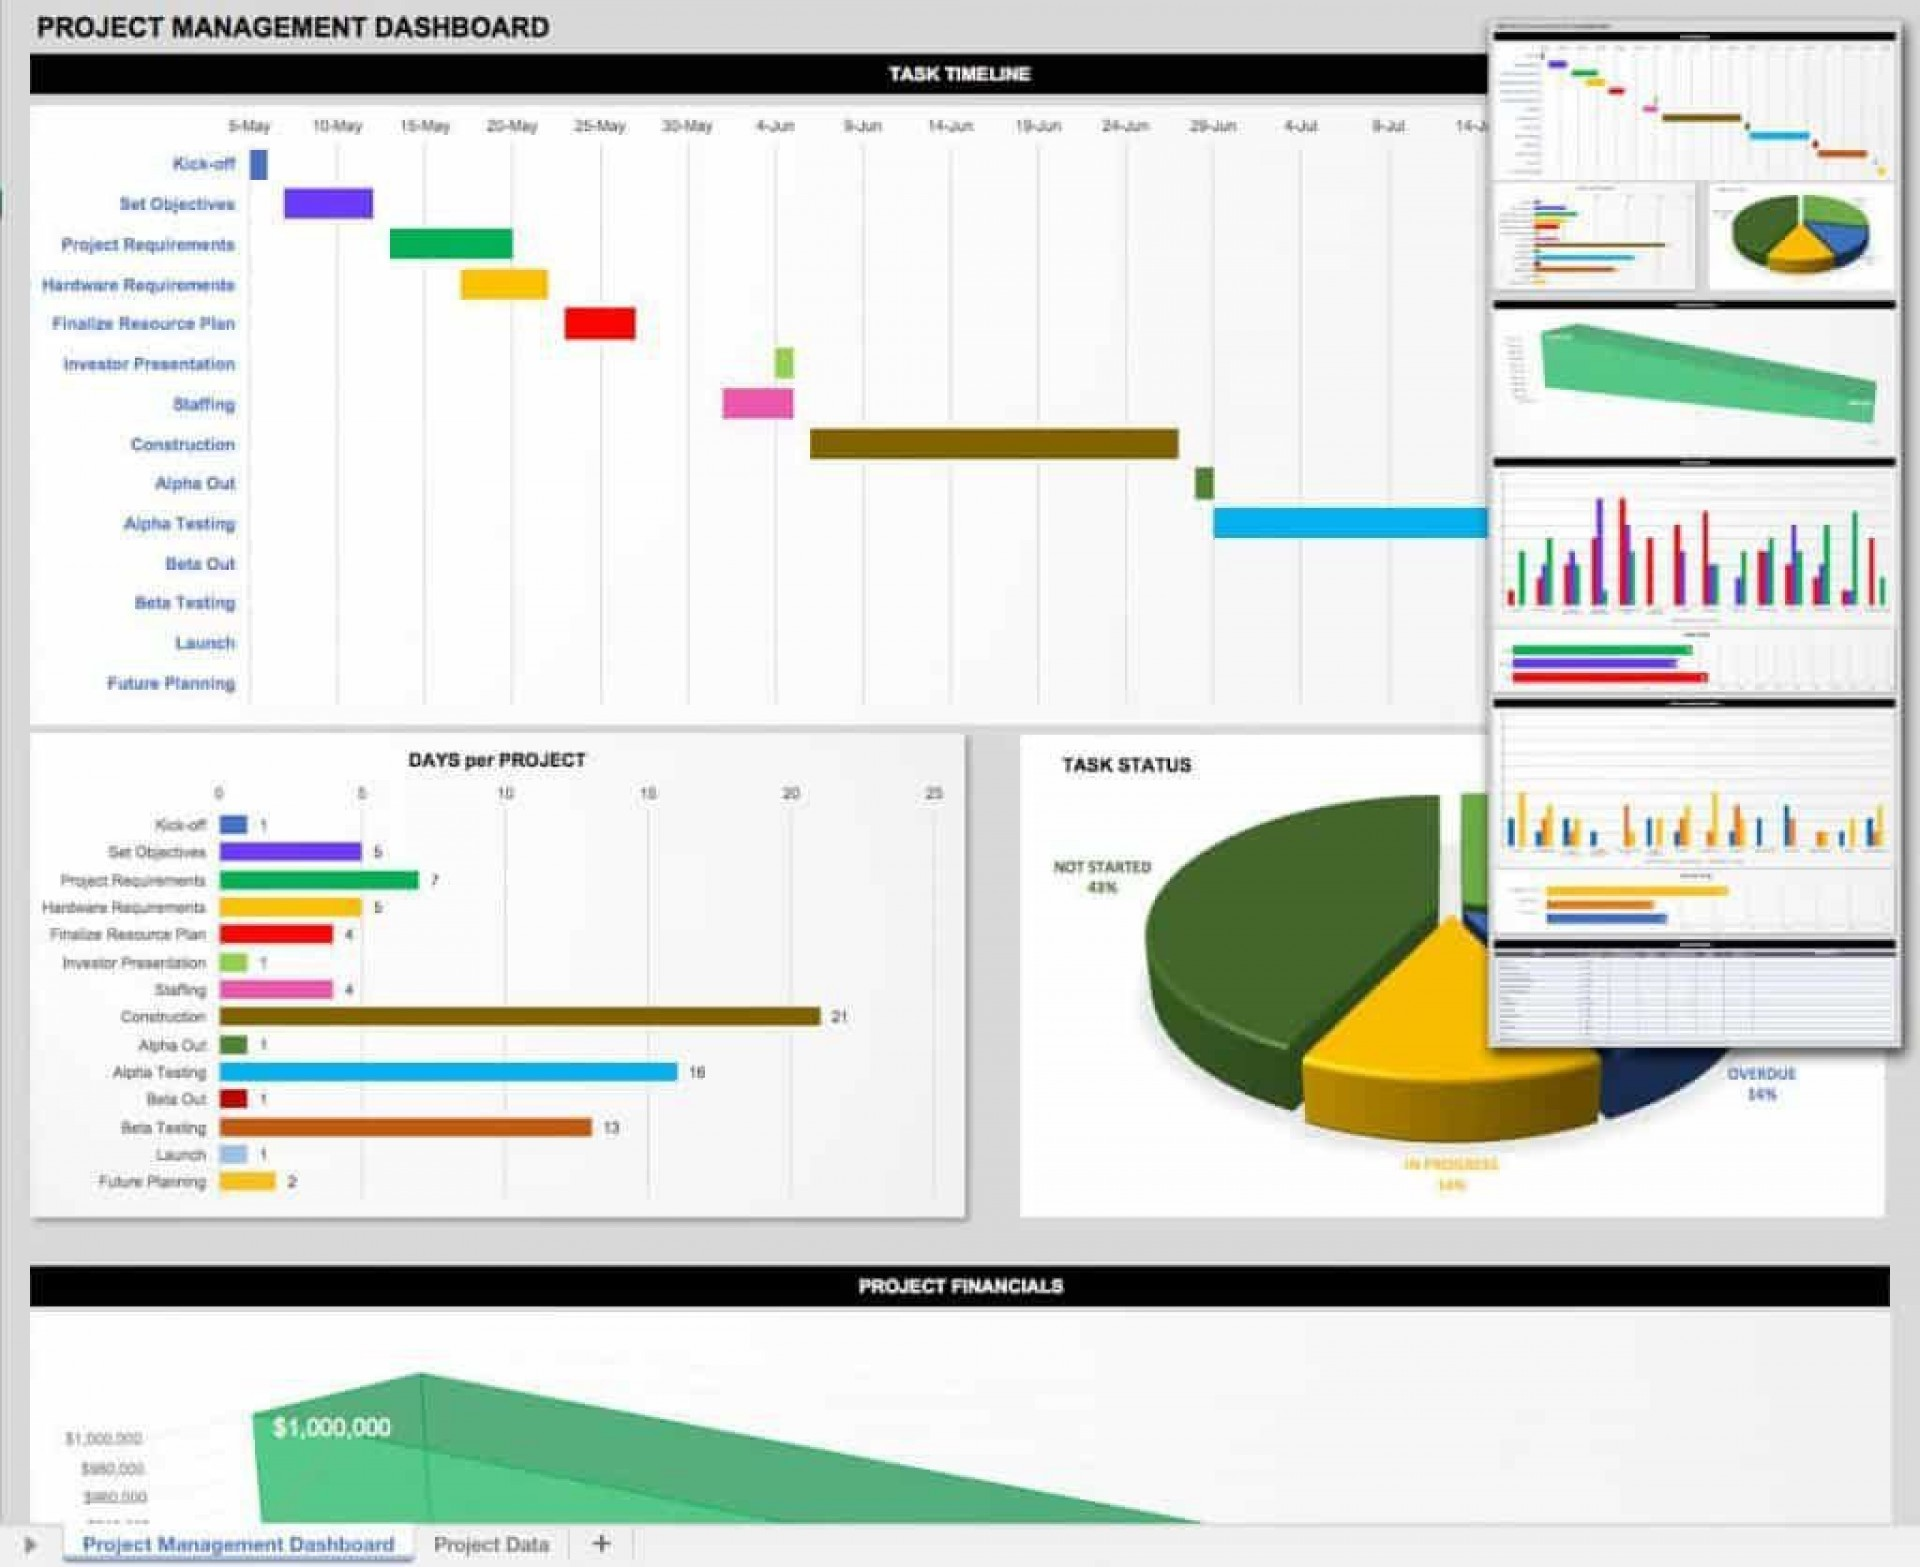 009 Staggering Project Management Dashboard Excel Template Free Design  Simple Multiple1920